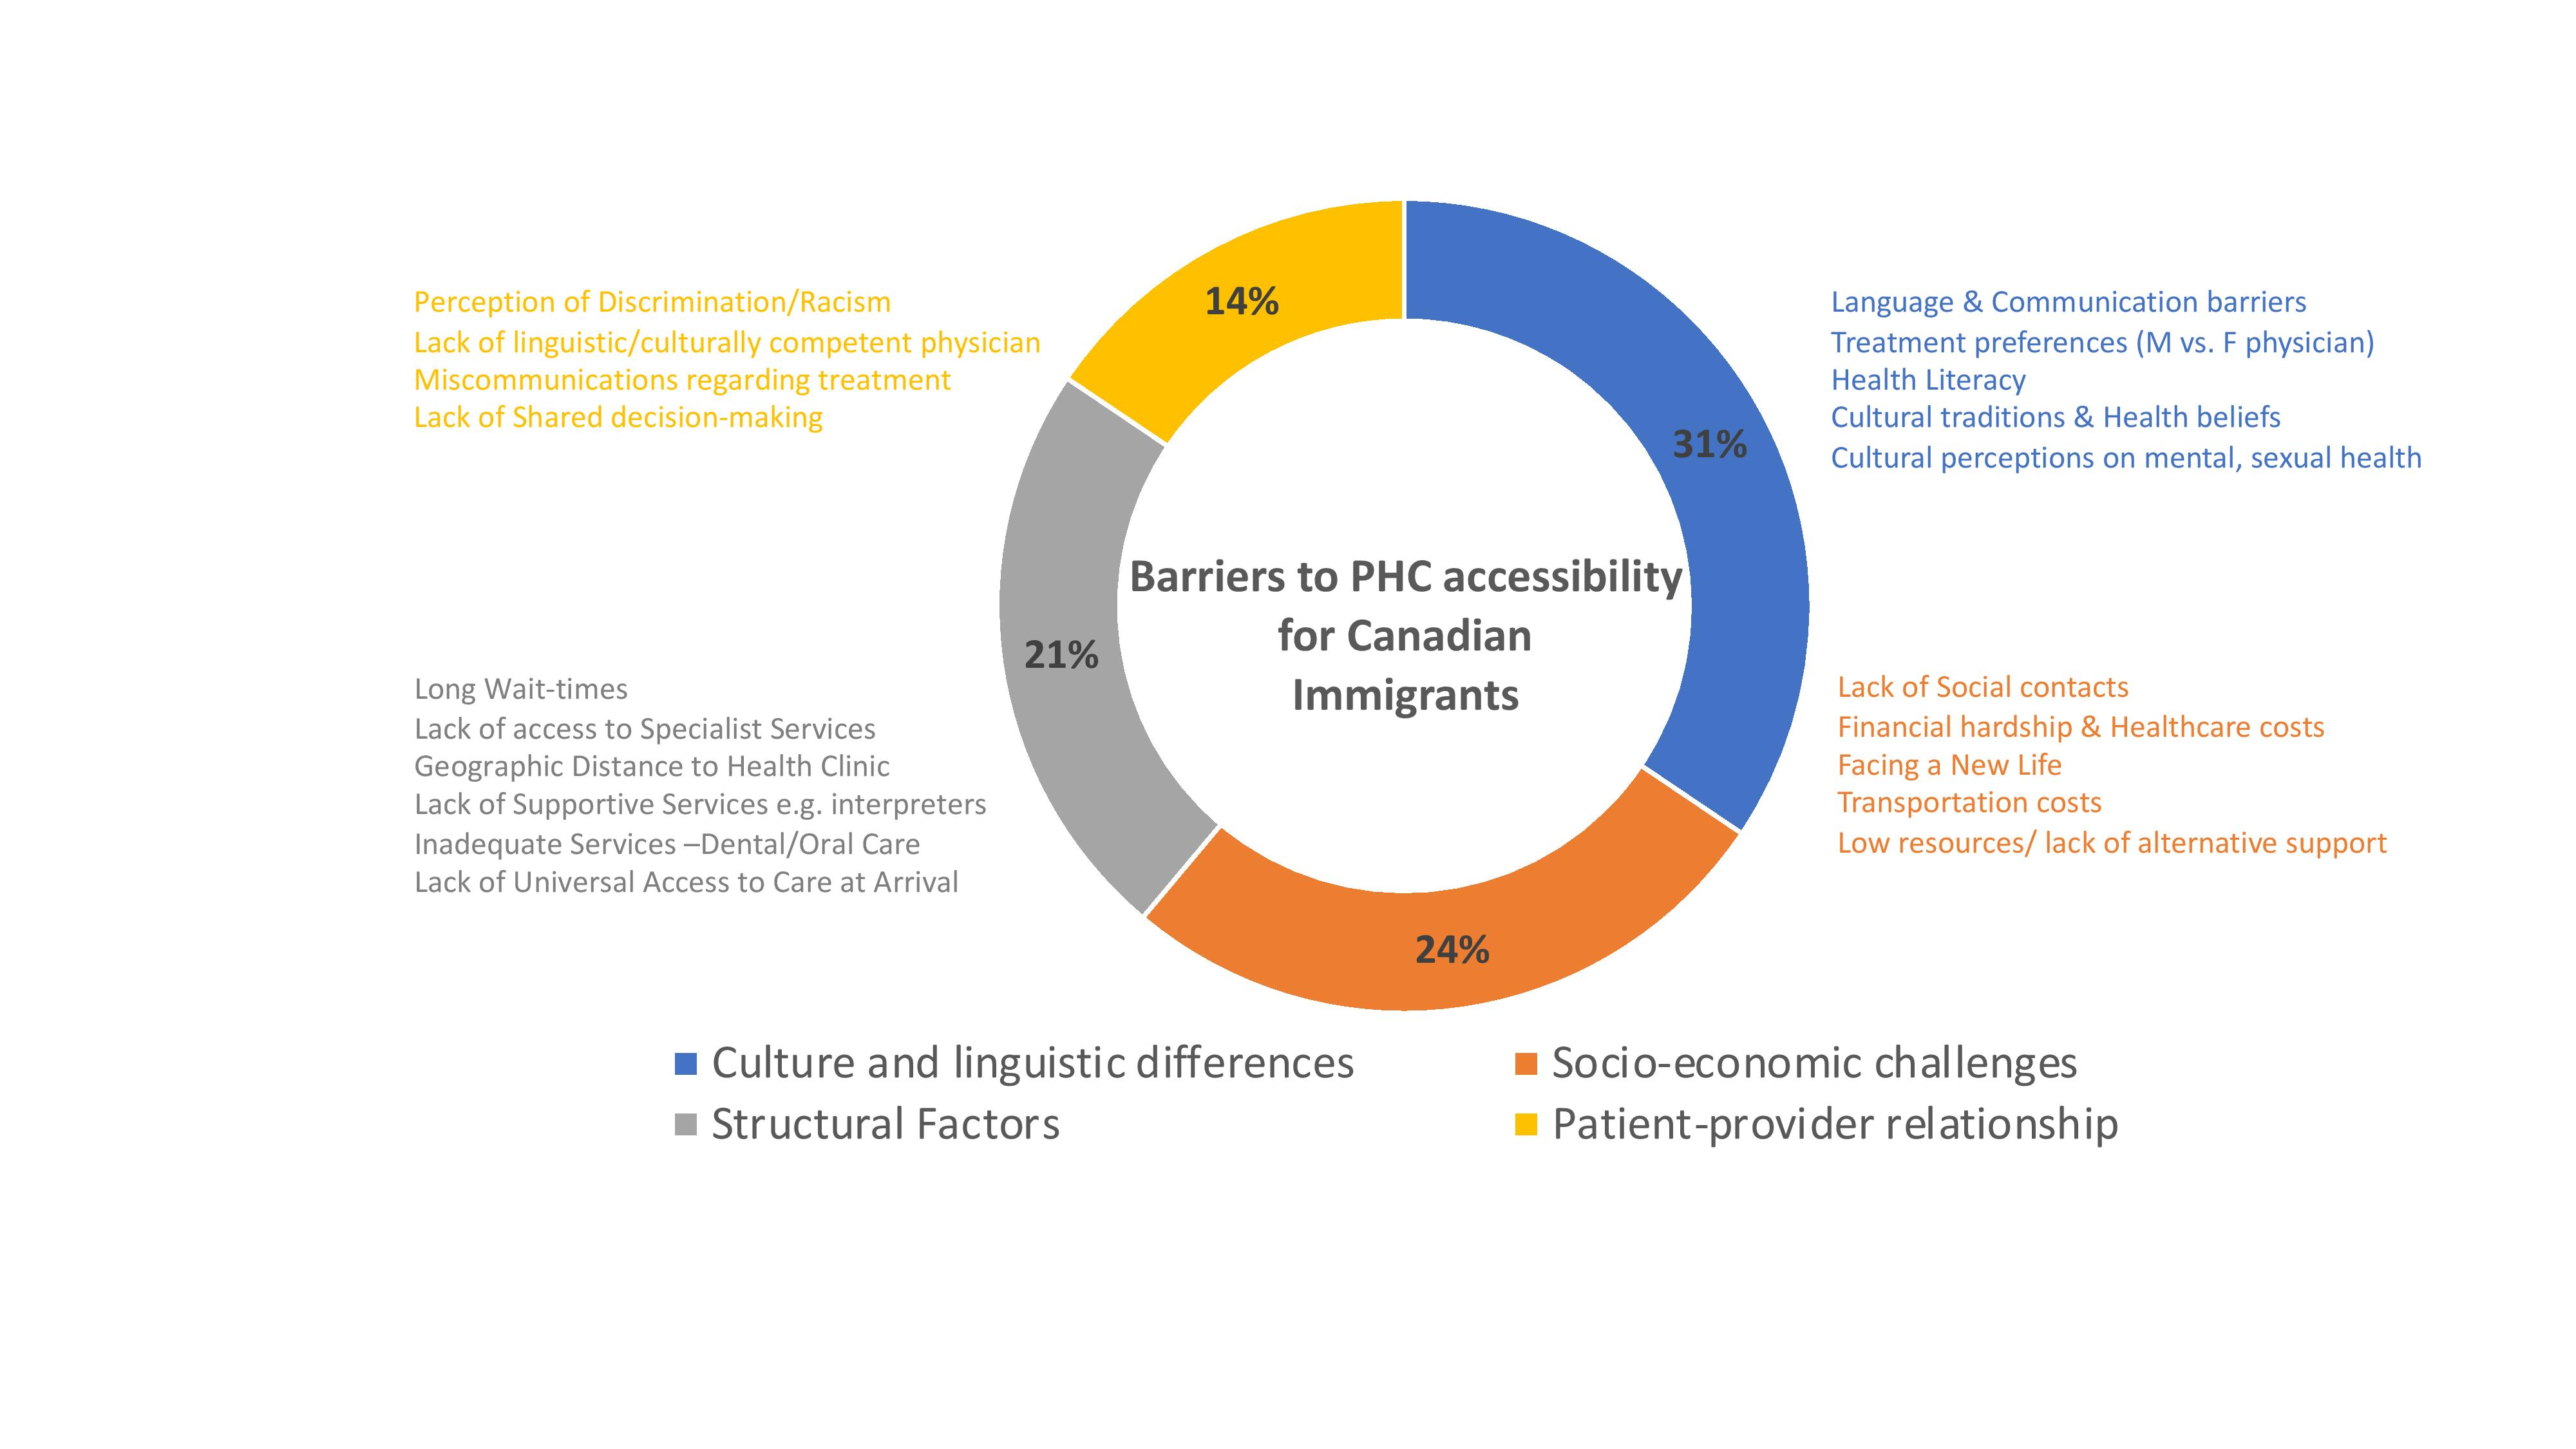 Barriers to Accessing PHC in Canada for Immigrant Population